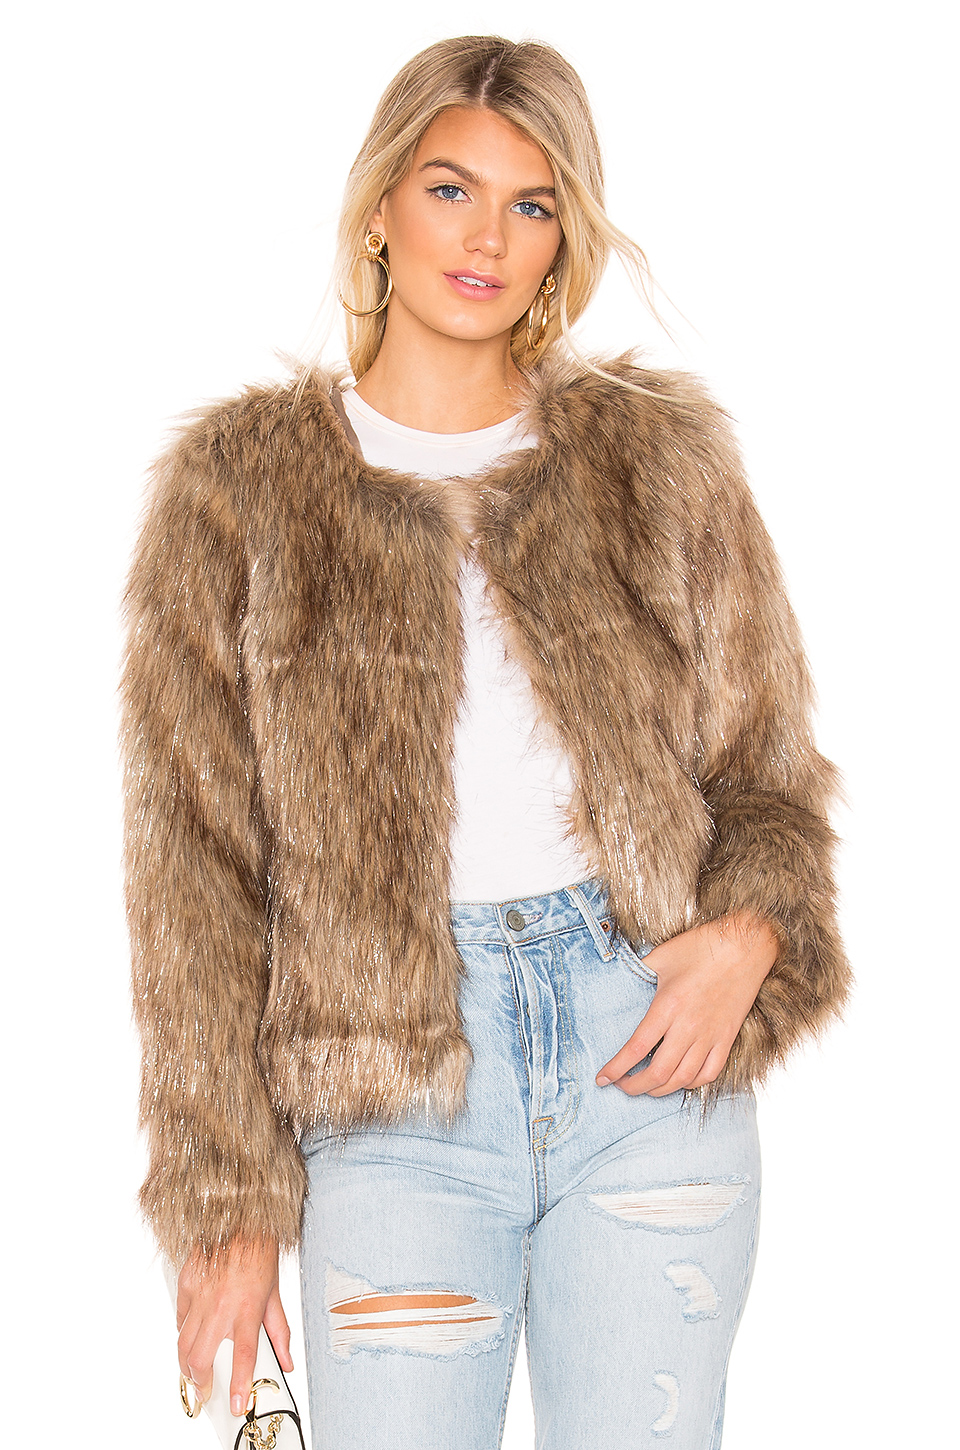 0e591be9f173 Buy Original Unreal Fur Perfect Faux Fur Jacket at Indonesia | BOBOBOBO